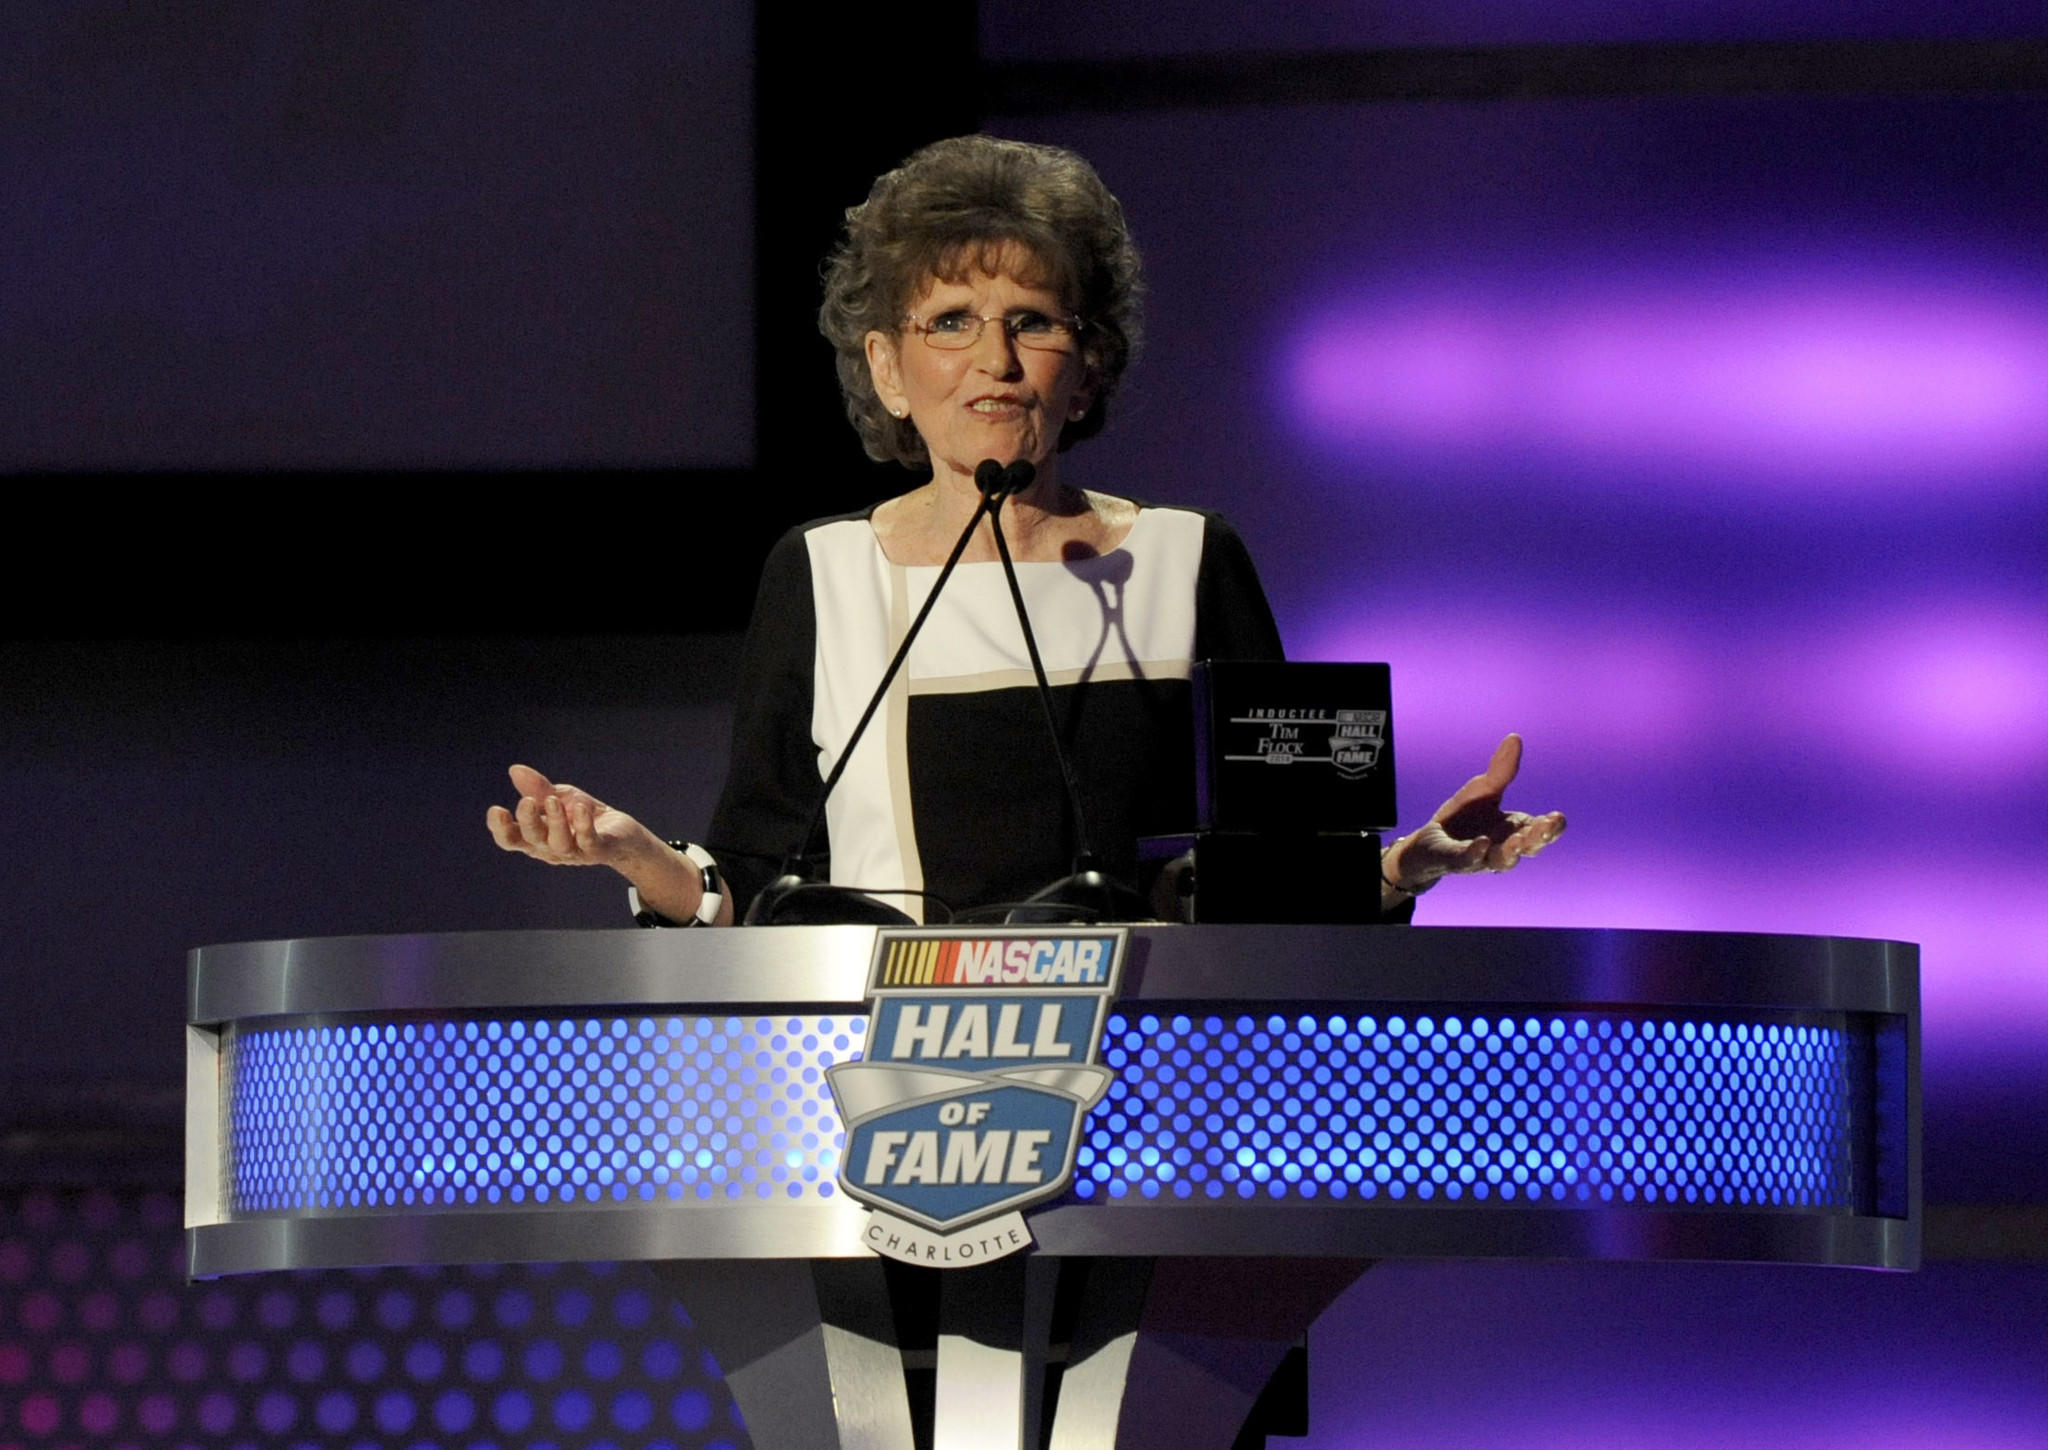 Francis Flock, widow of NASCAR Sprint Cup Series driver Tim Flock, makes a speech on behalf of her husband after he was inducted to the Hall of Fame during the NASCAR hall of fame induction ceremony at NASCAR Hall of Fame.